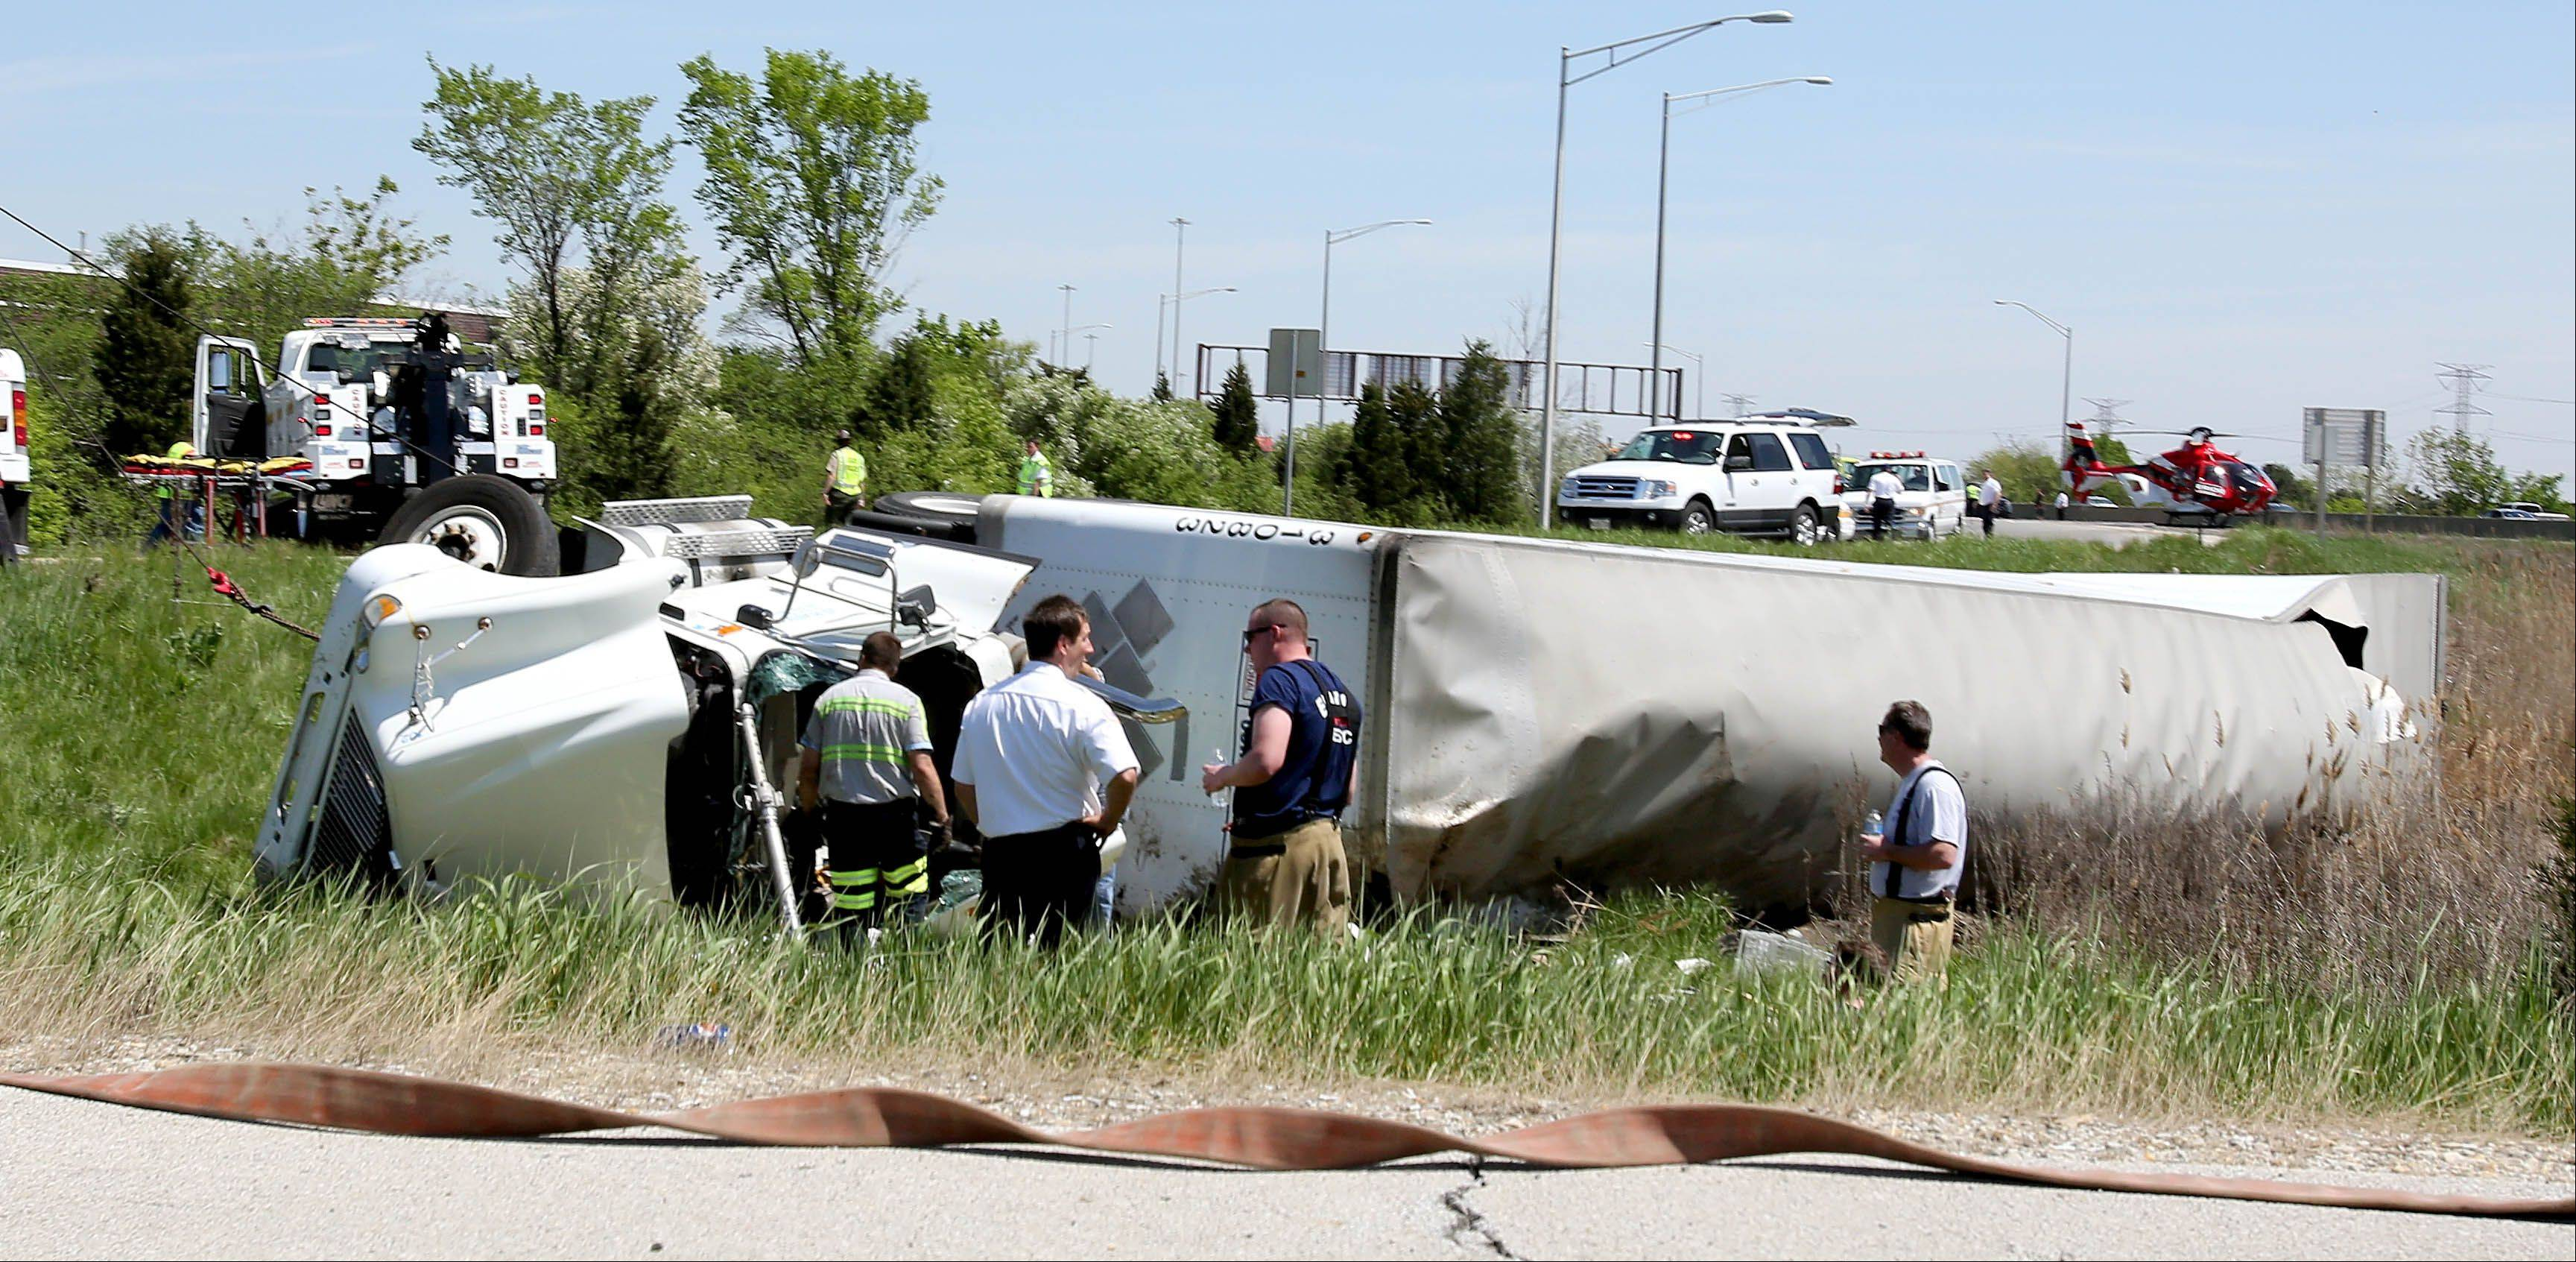 The westbound lanes of I-290 were closed Wednesday afternoon near the Bensenville-Elmhurst border after a semitrailer truck overturned on an exit ramp and the driver was trapped inside the cab.